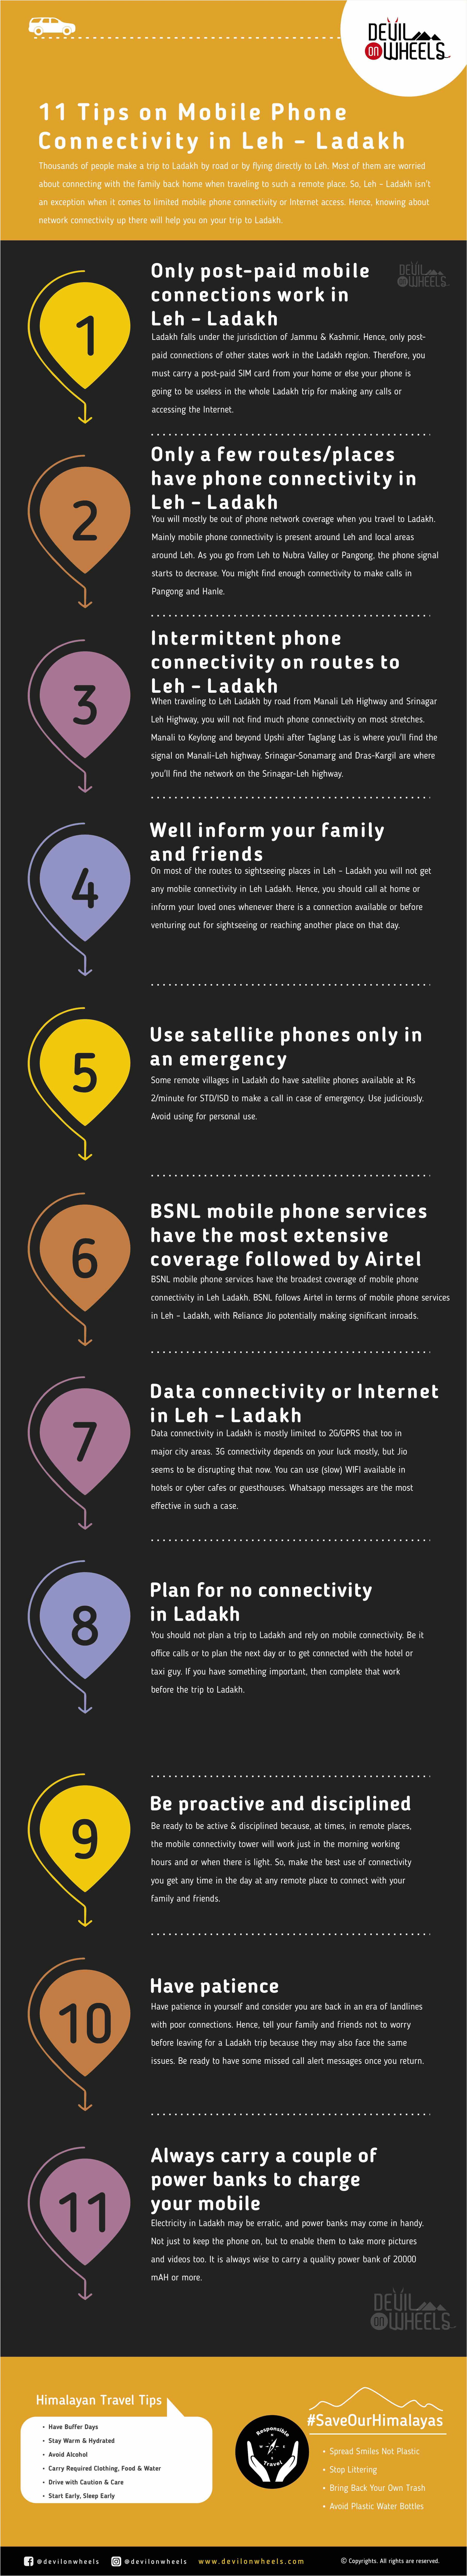 Mobile phone network connectivity in Ladakh region